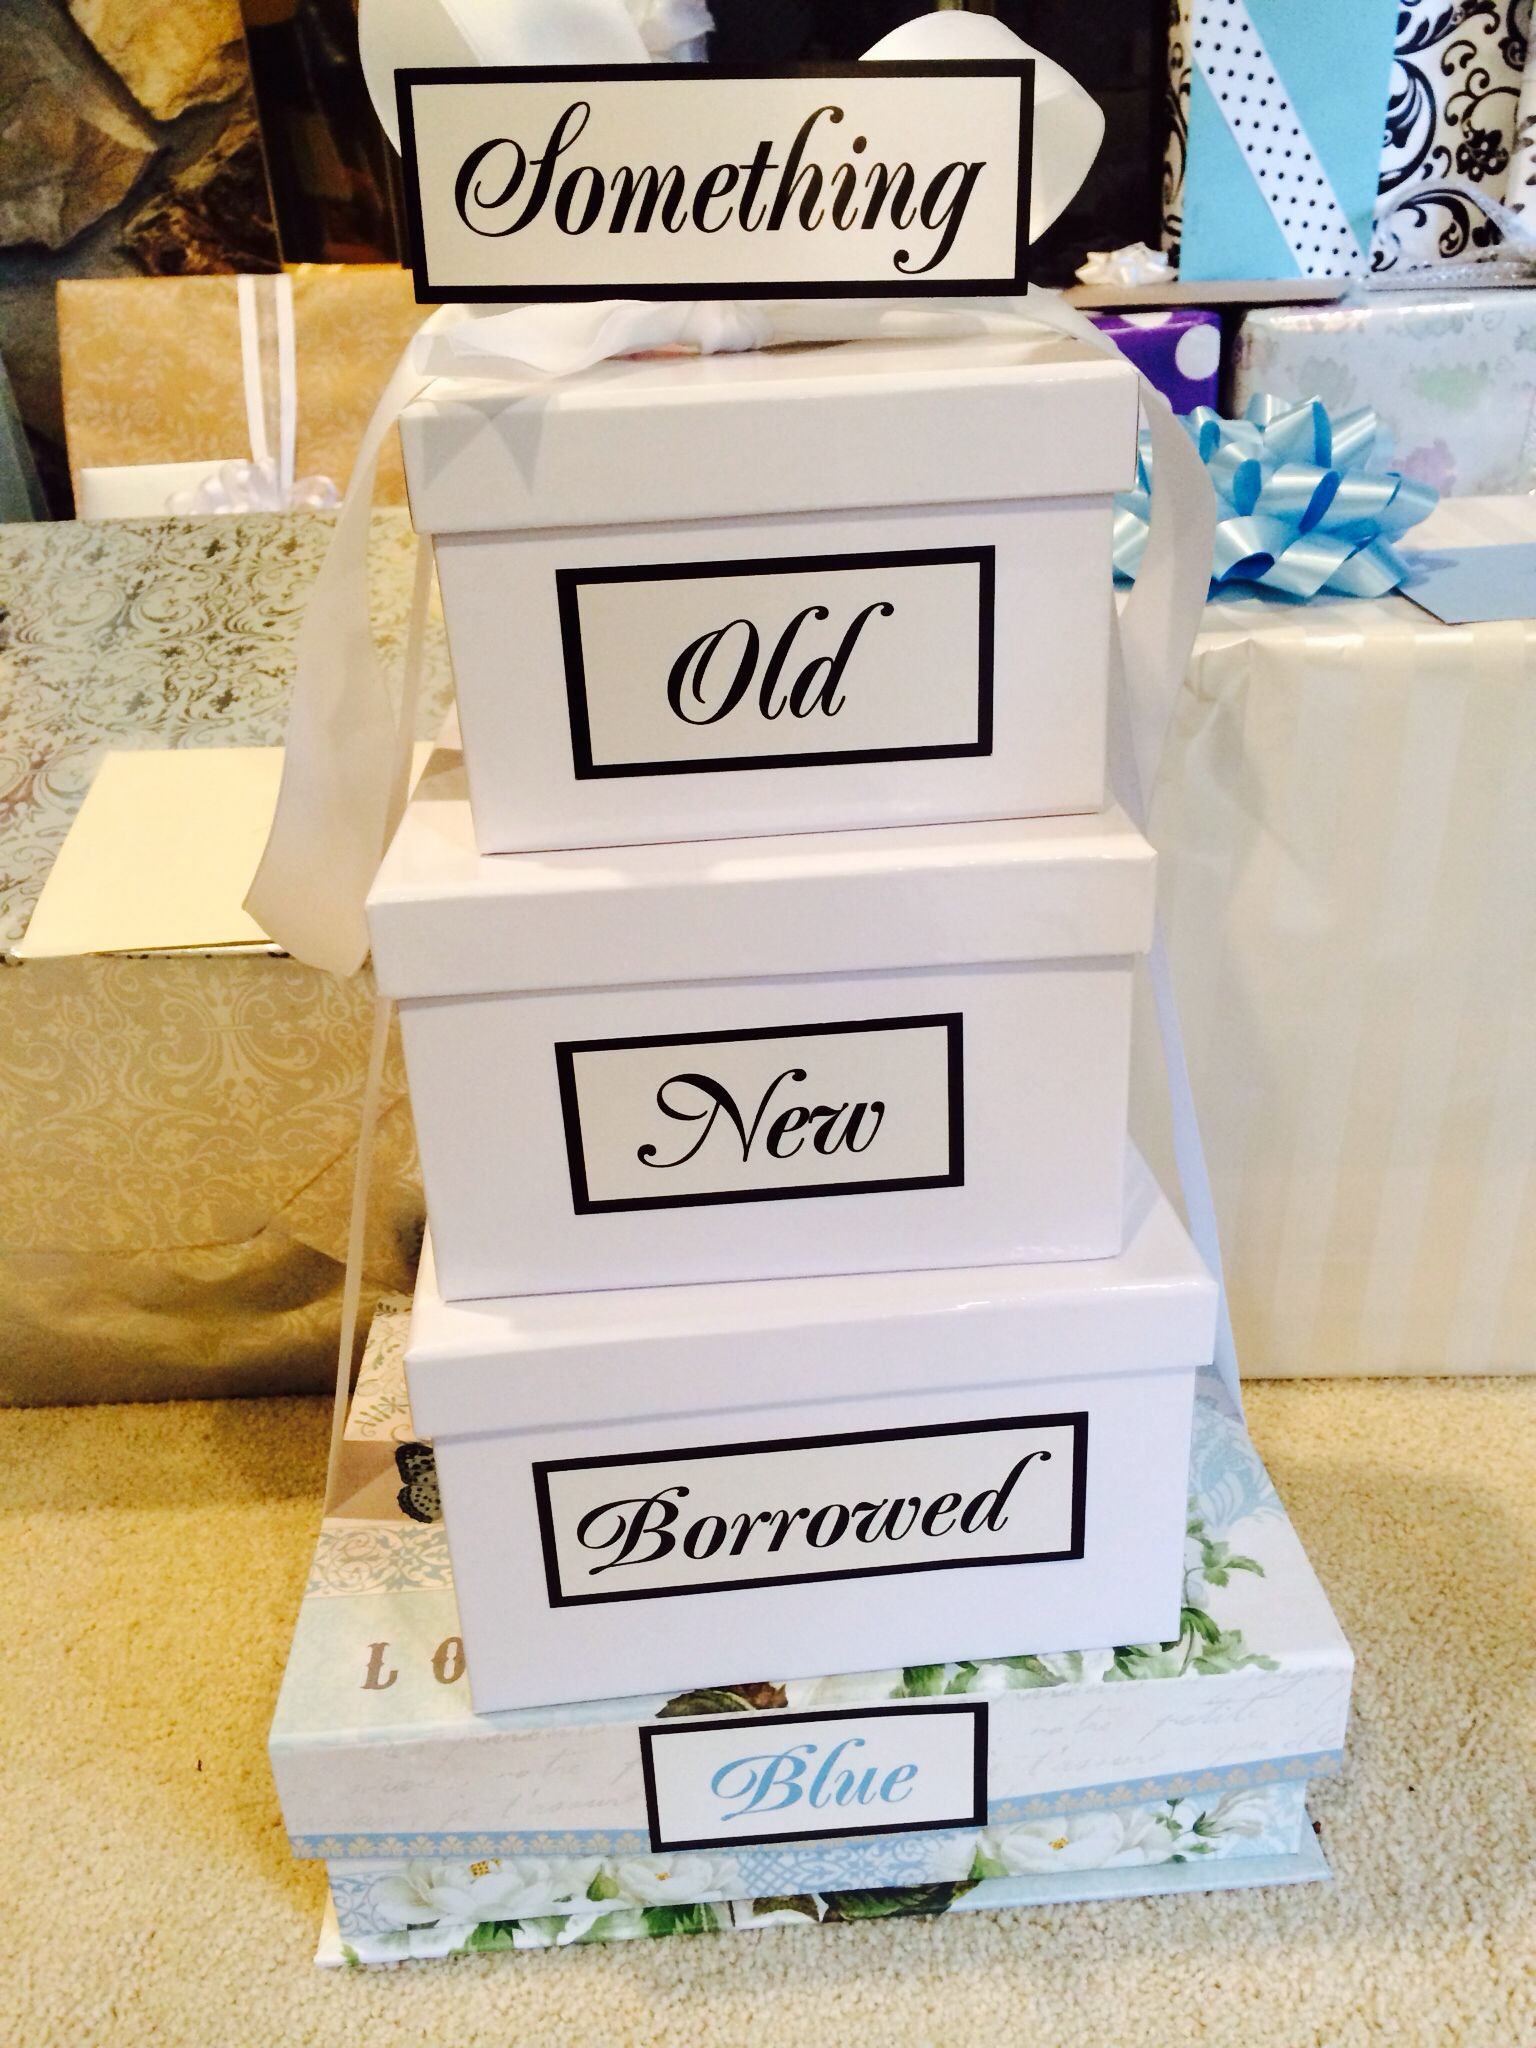 Wedding Gift Ideas For 20 Somethings : bridal showers